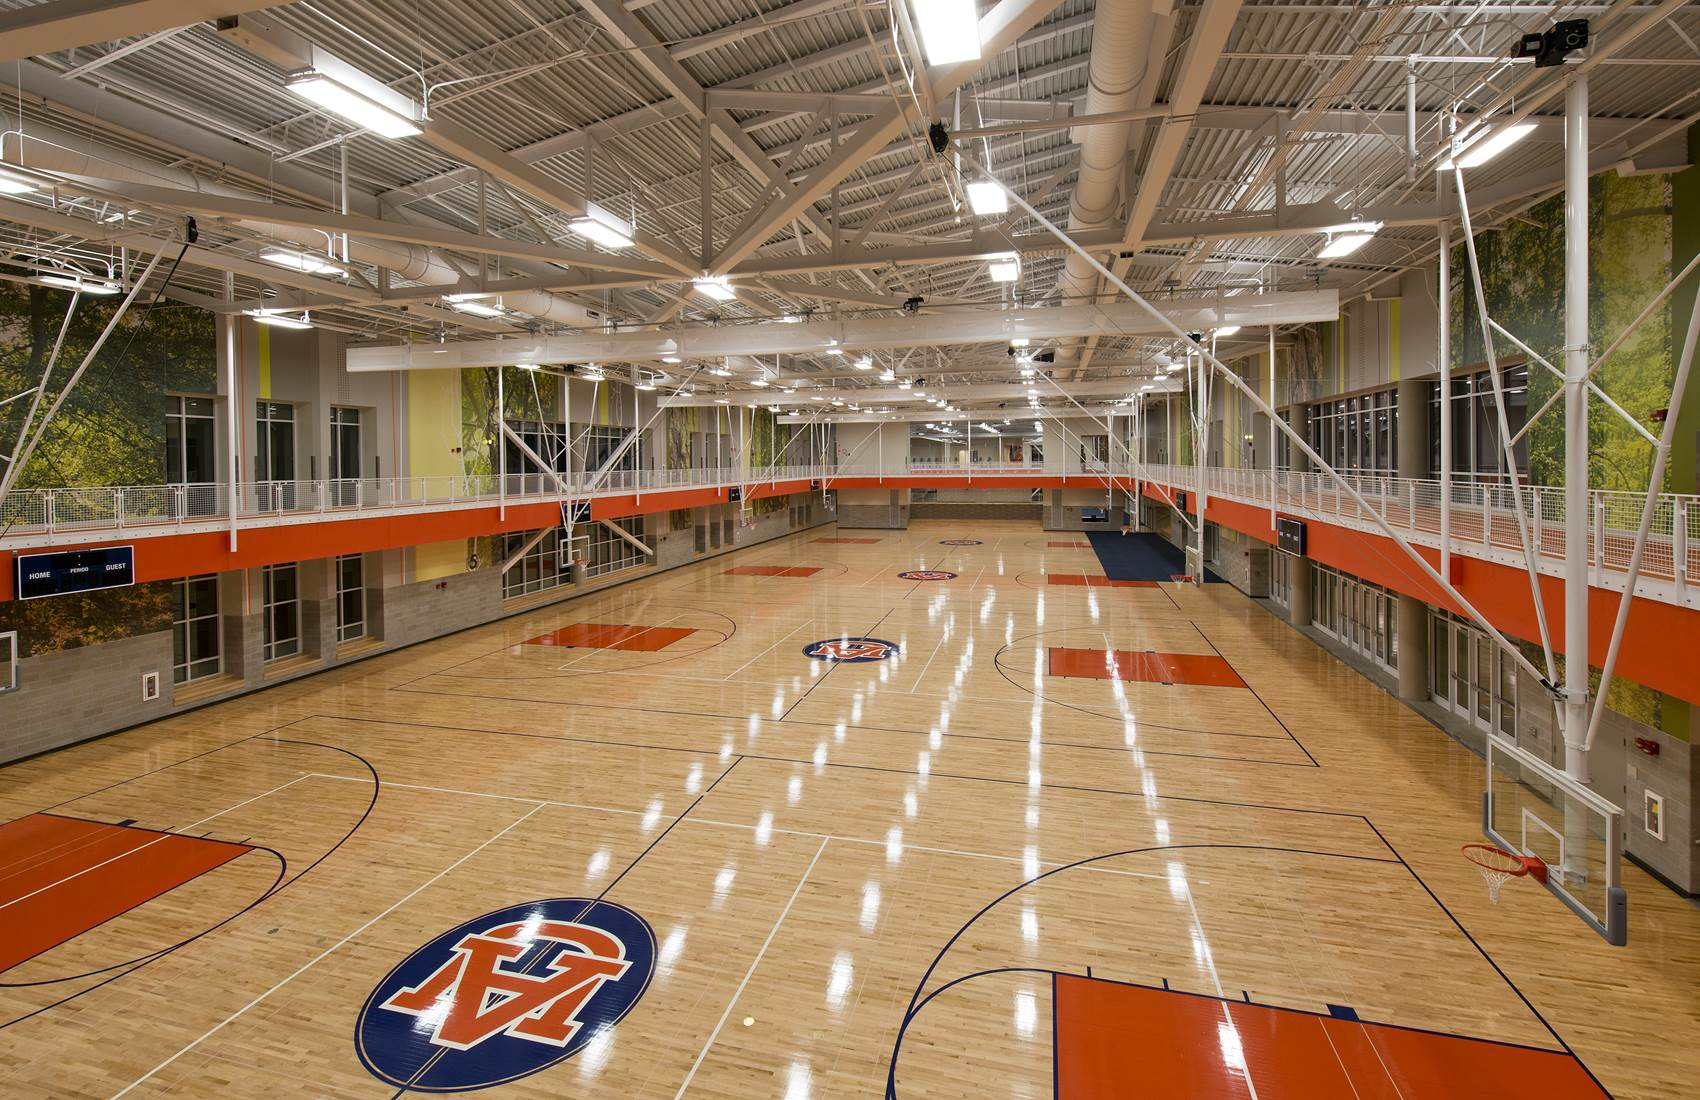 Basketball courts and indoor track at the Auburn University Recreation and Wellness Center